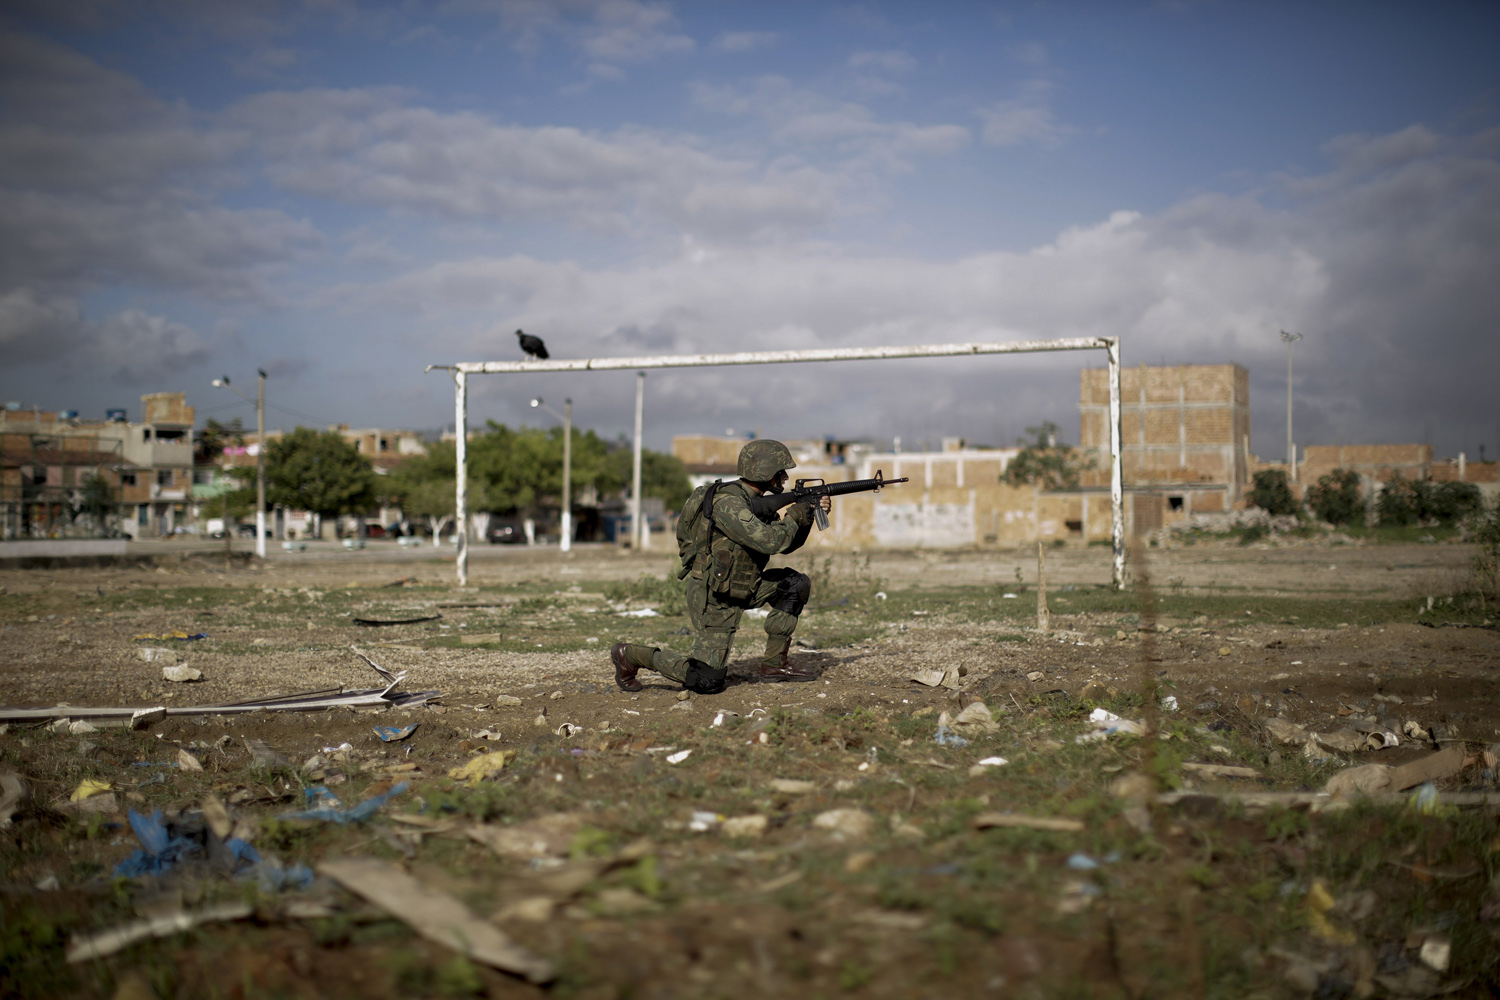 Apr. 5, 2014. A navy soldier patrols on a soccer field during an operation to occupy the Mare slum complex in Rio de Janeiro, Brazil. More than 2,000 Brazilian Army soldiers moved into the Mare slum complex early Saturday in a bid to improve security and drive out the heavily armed drug gangs that have ruled the sprawling slum for decades.